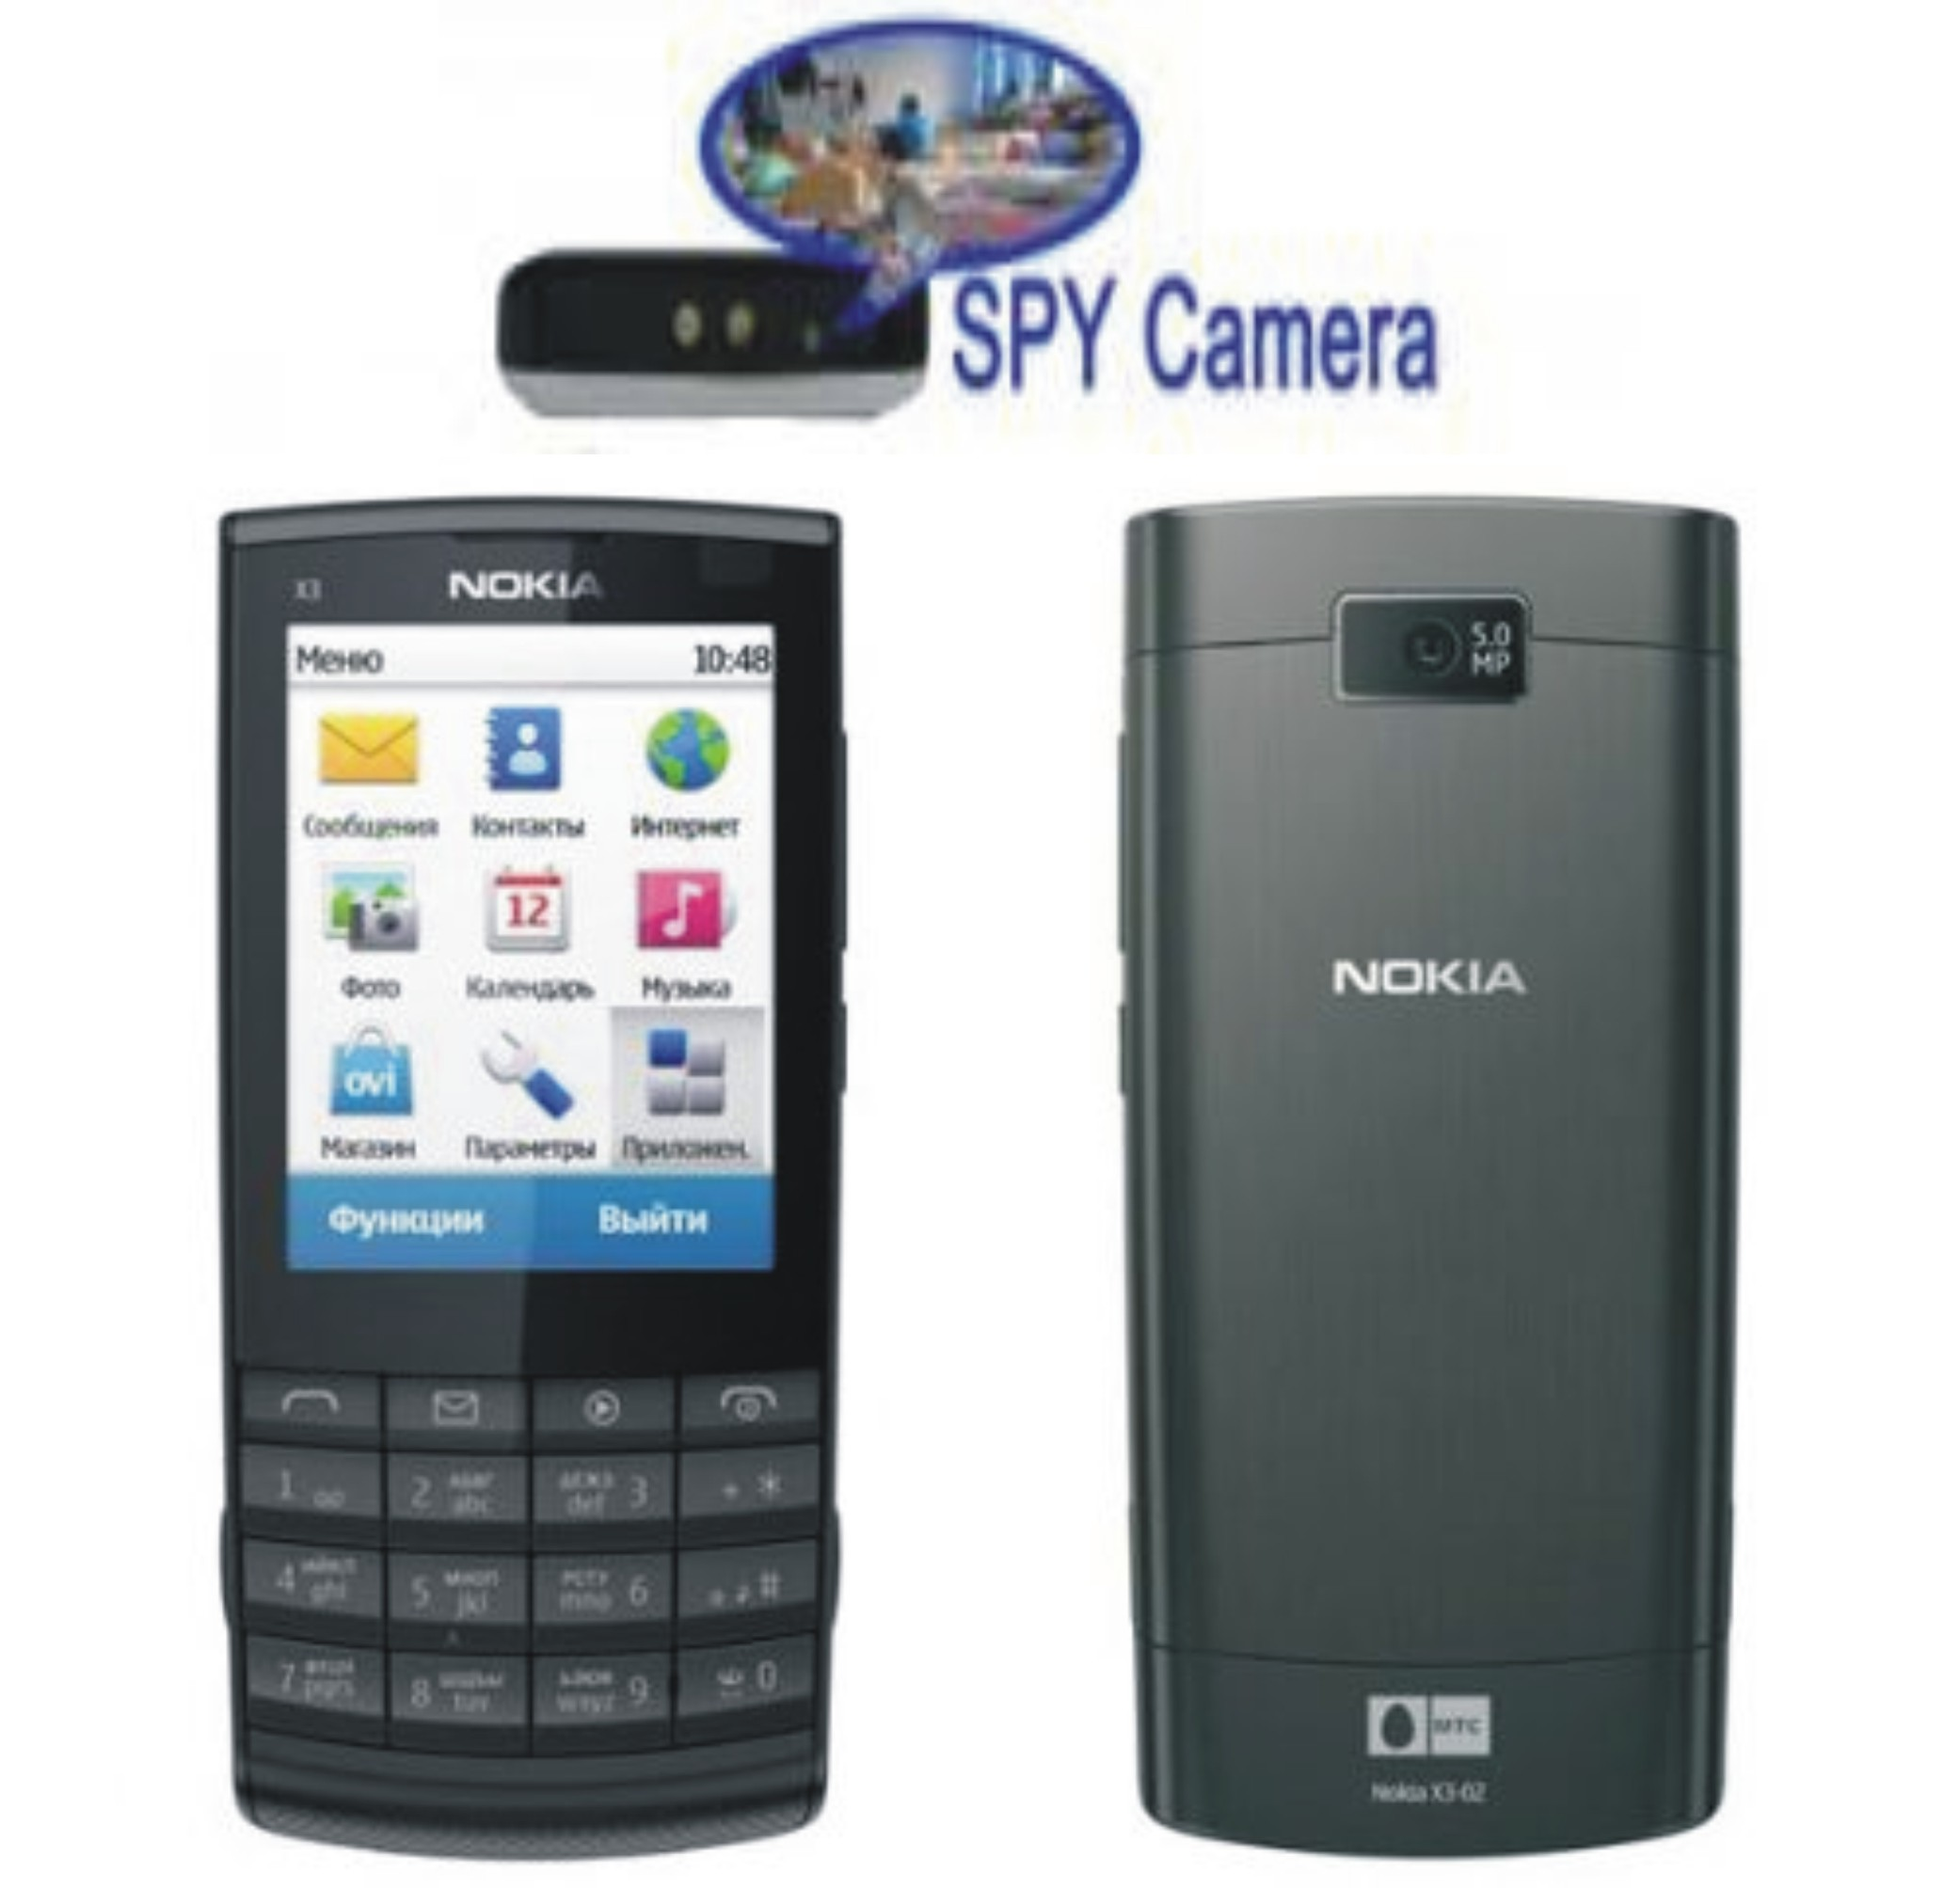 Spy Camera In Nokia Phone Touch Screen